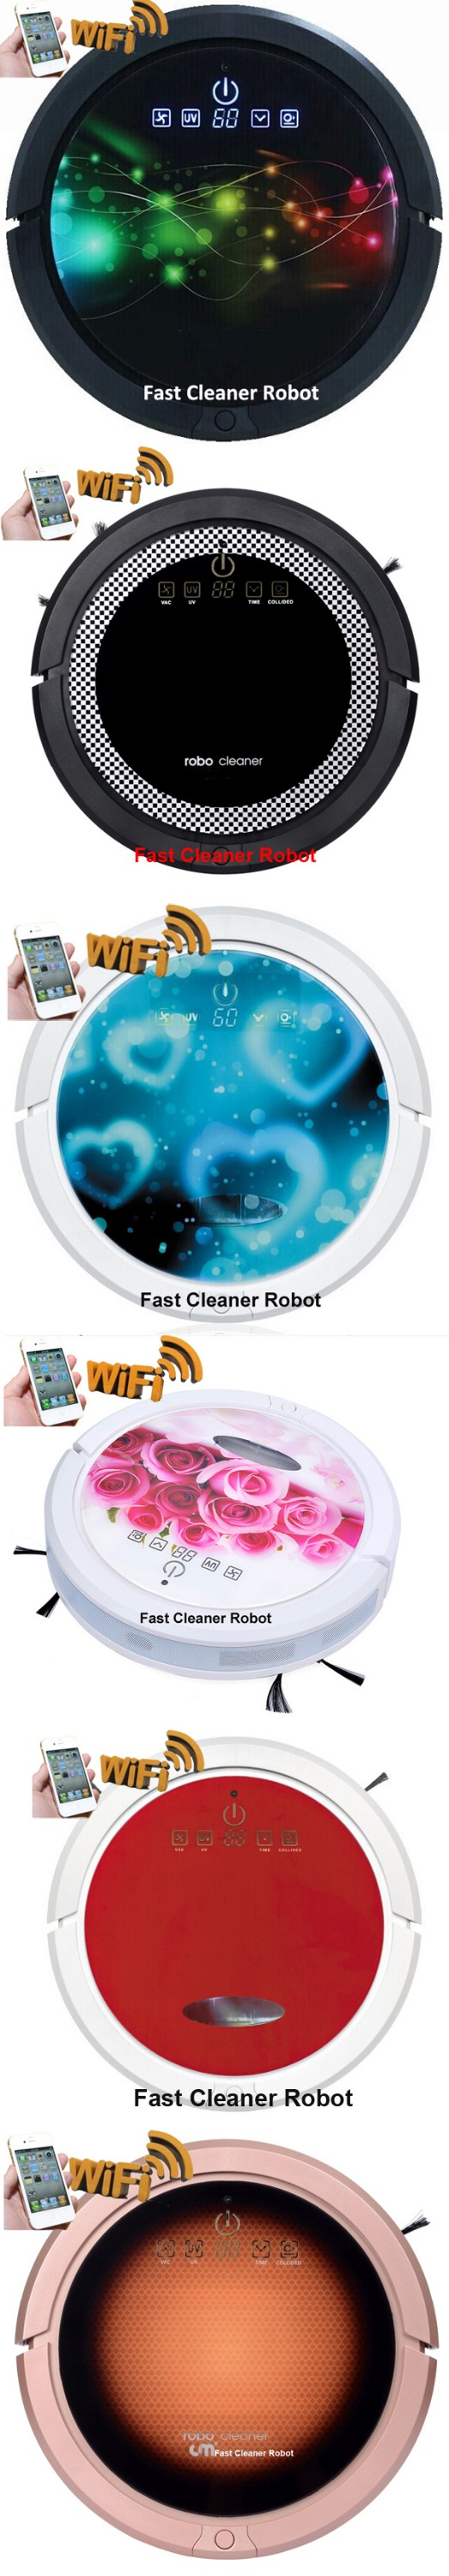 Smartphone app WIFI control cordless vacuum cleaner robot with water tank for wet and dry cleaning